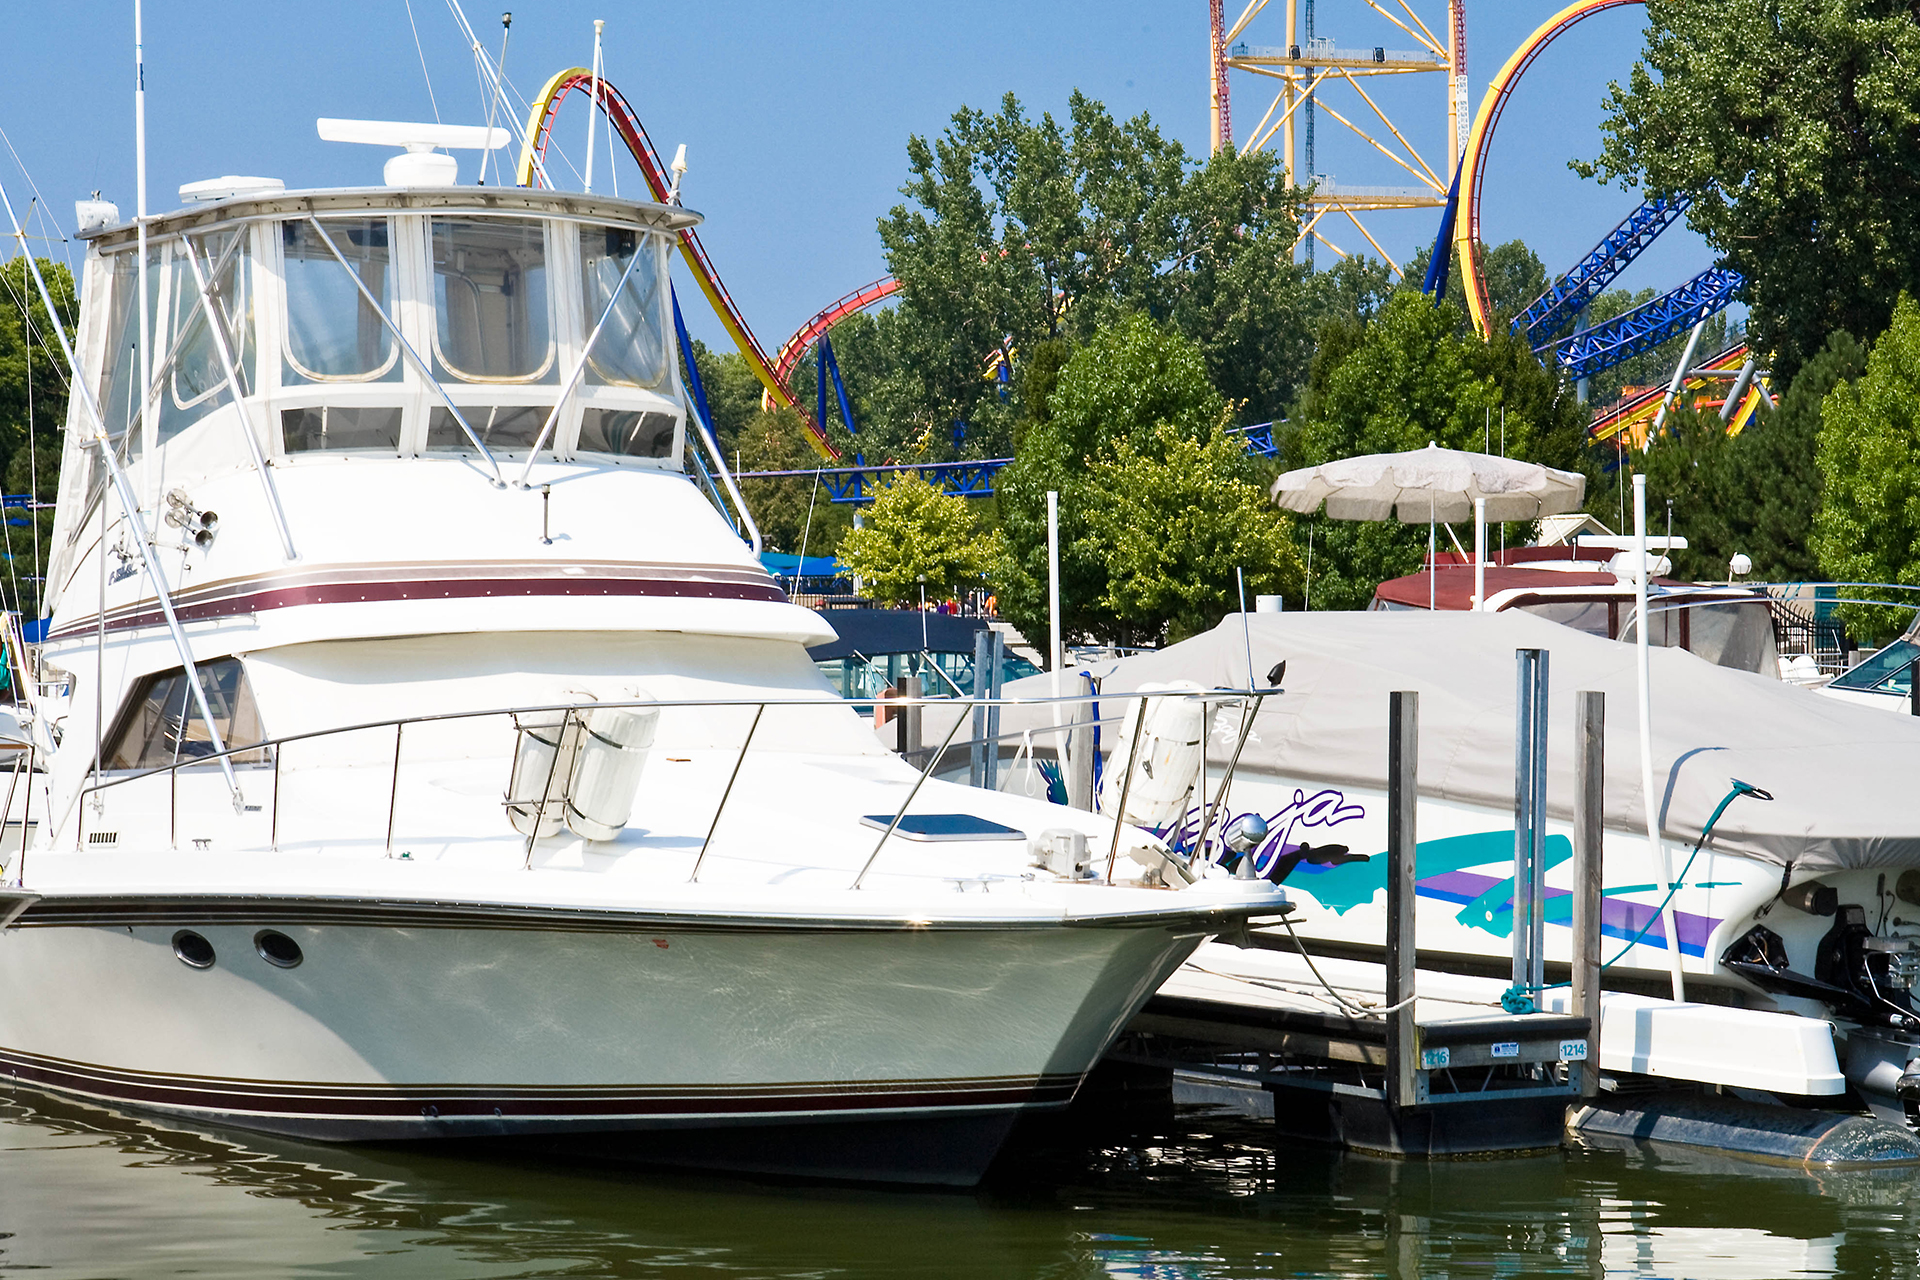 Marinas at Cedar Point | Cedar Point